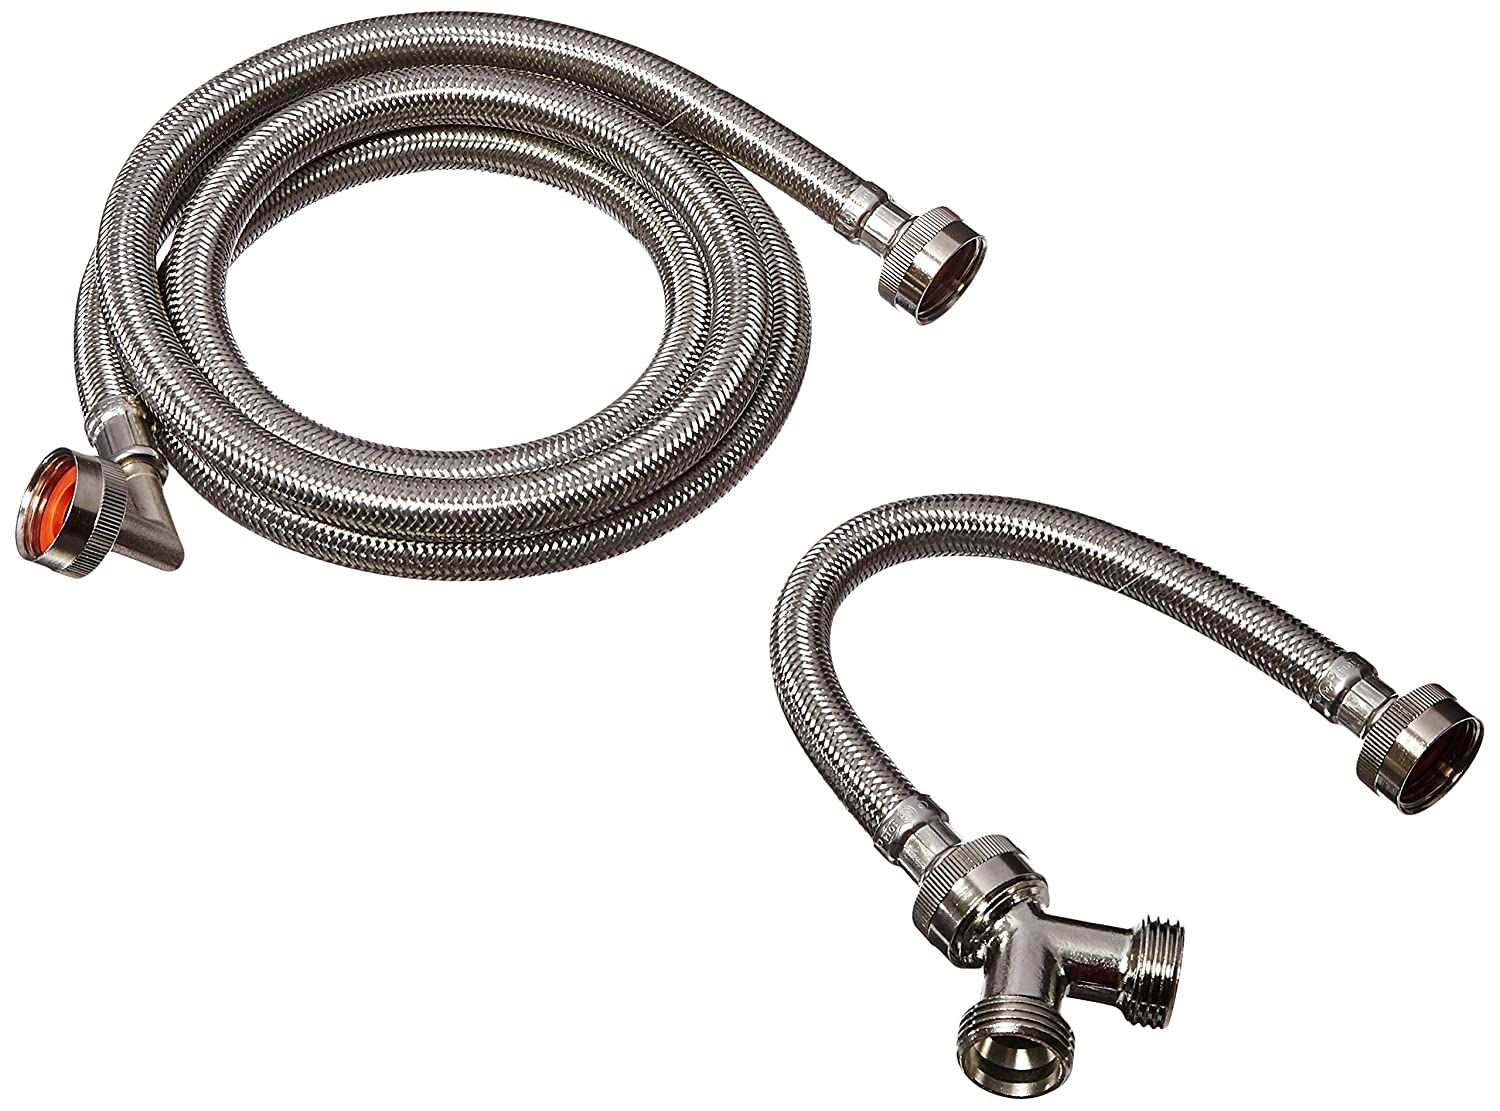 Eastman 41025 Stainless Steel Steam Dryer Installation Kit, 6 Ft Length, Silver